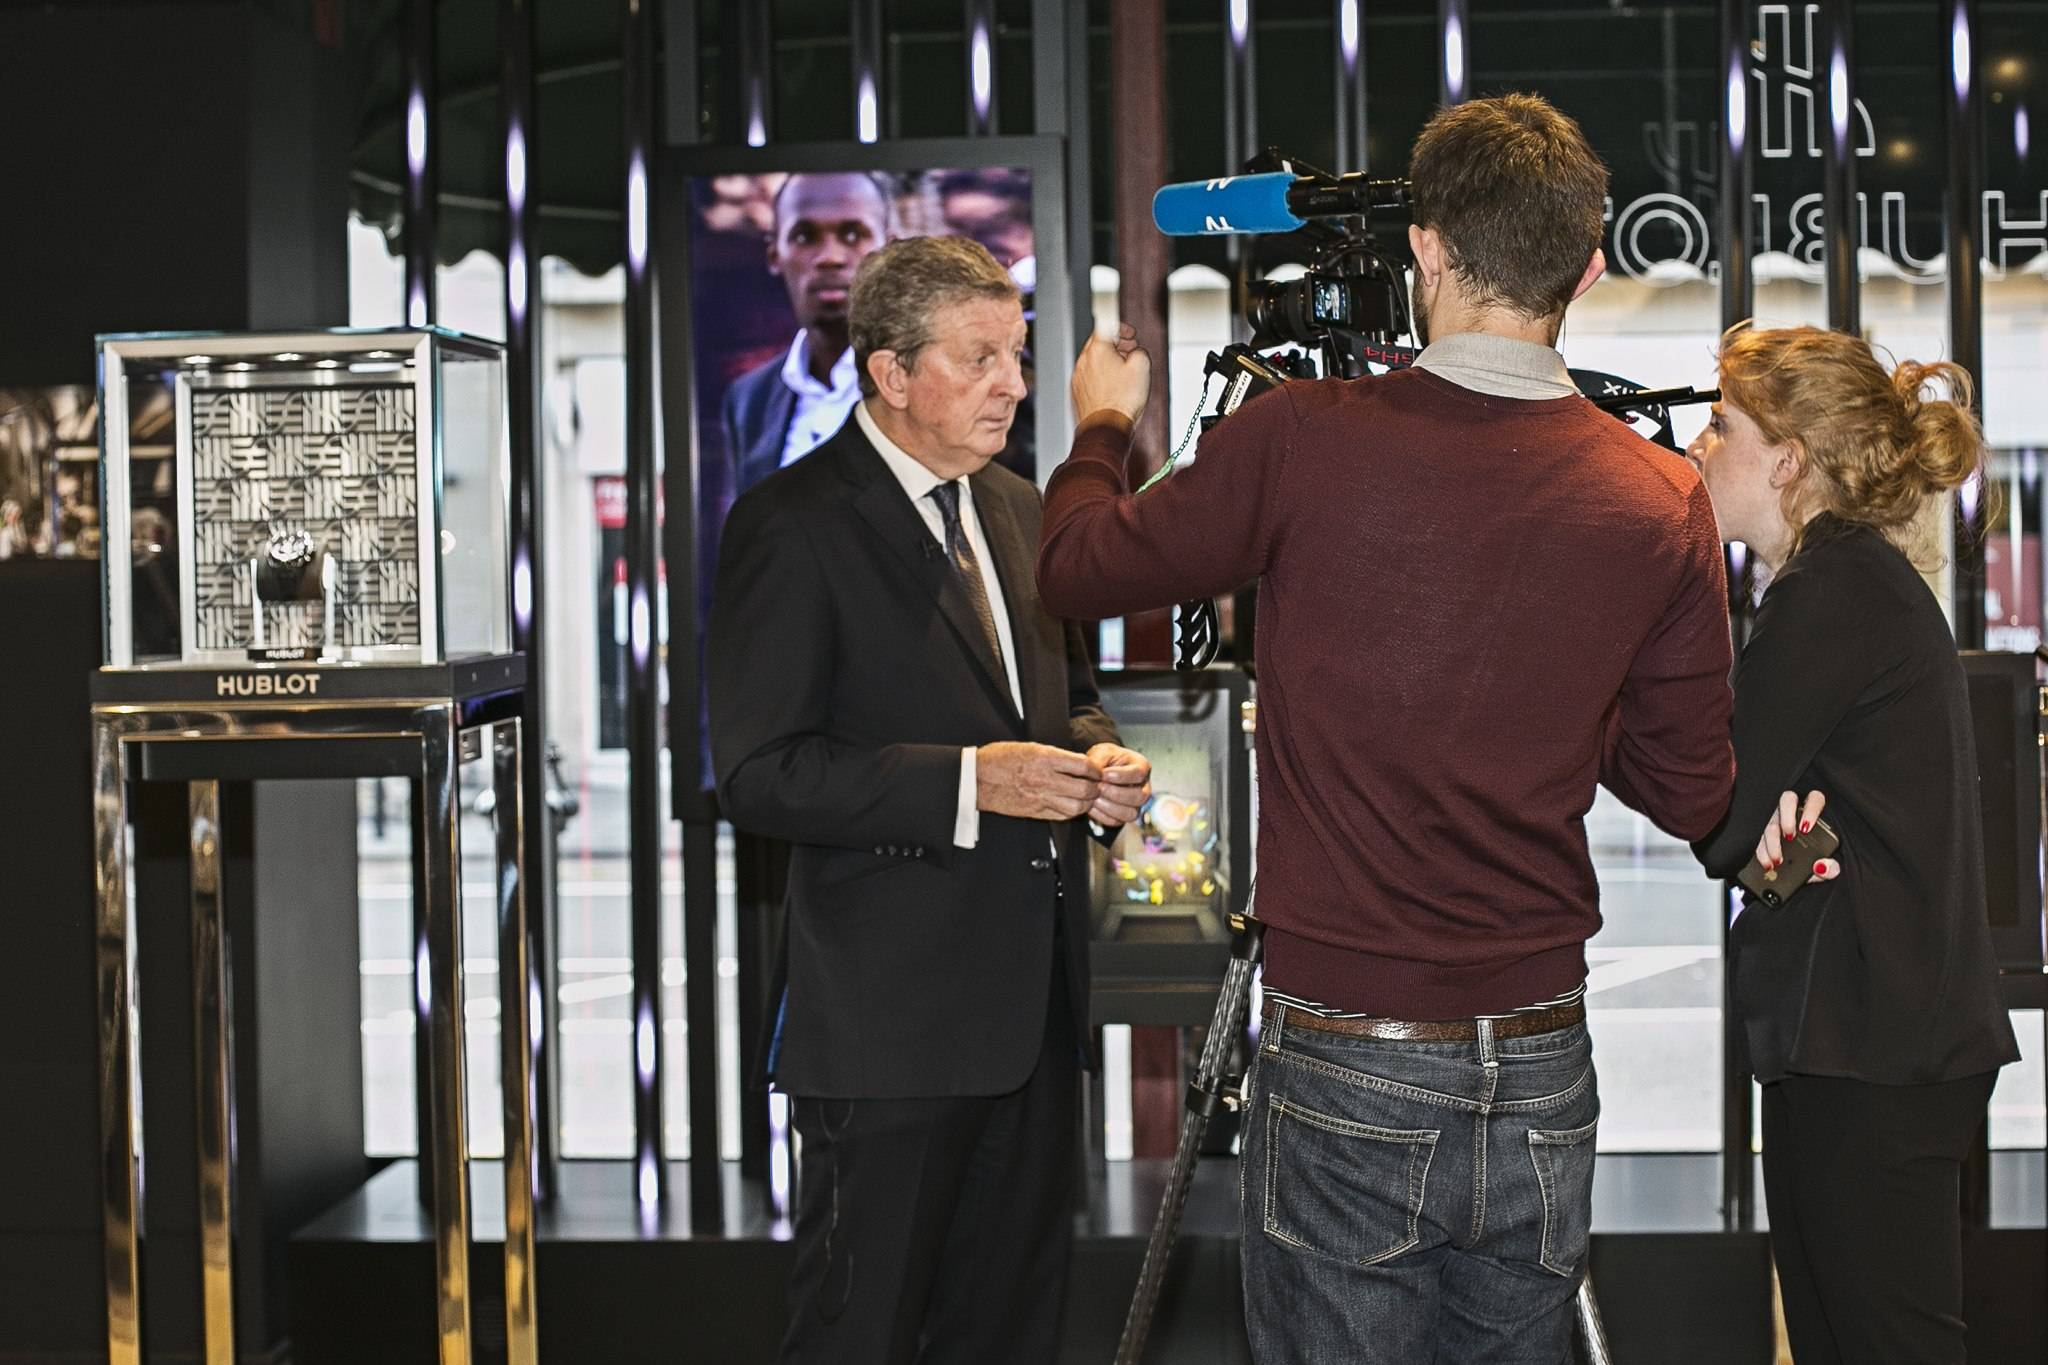 England Manager Roy Hodgson at Hublot Fluorescent Fusion Exhibition Harrods 2015